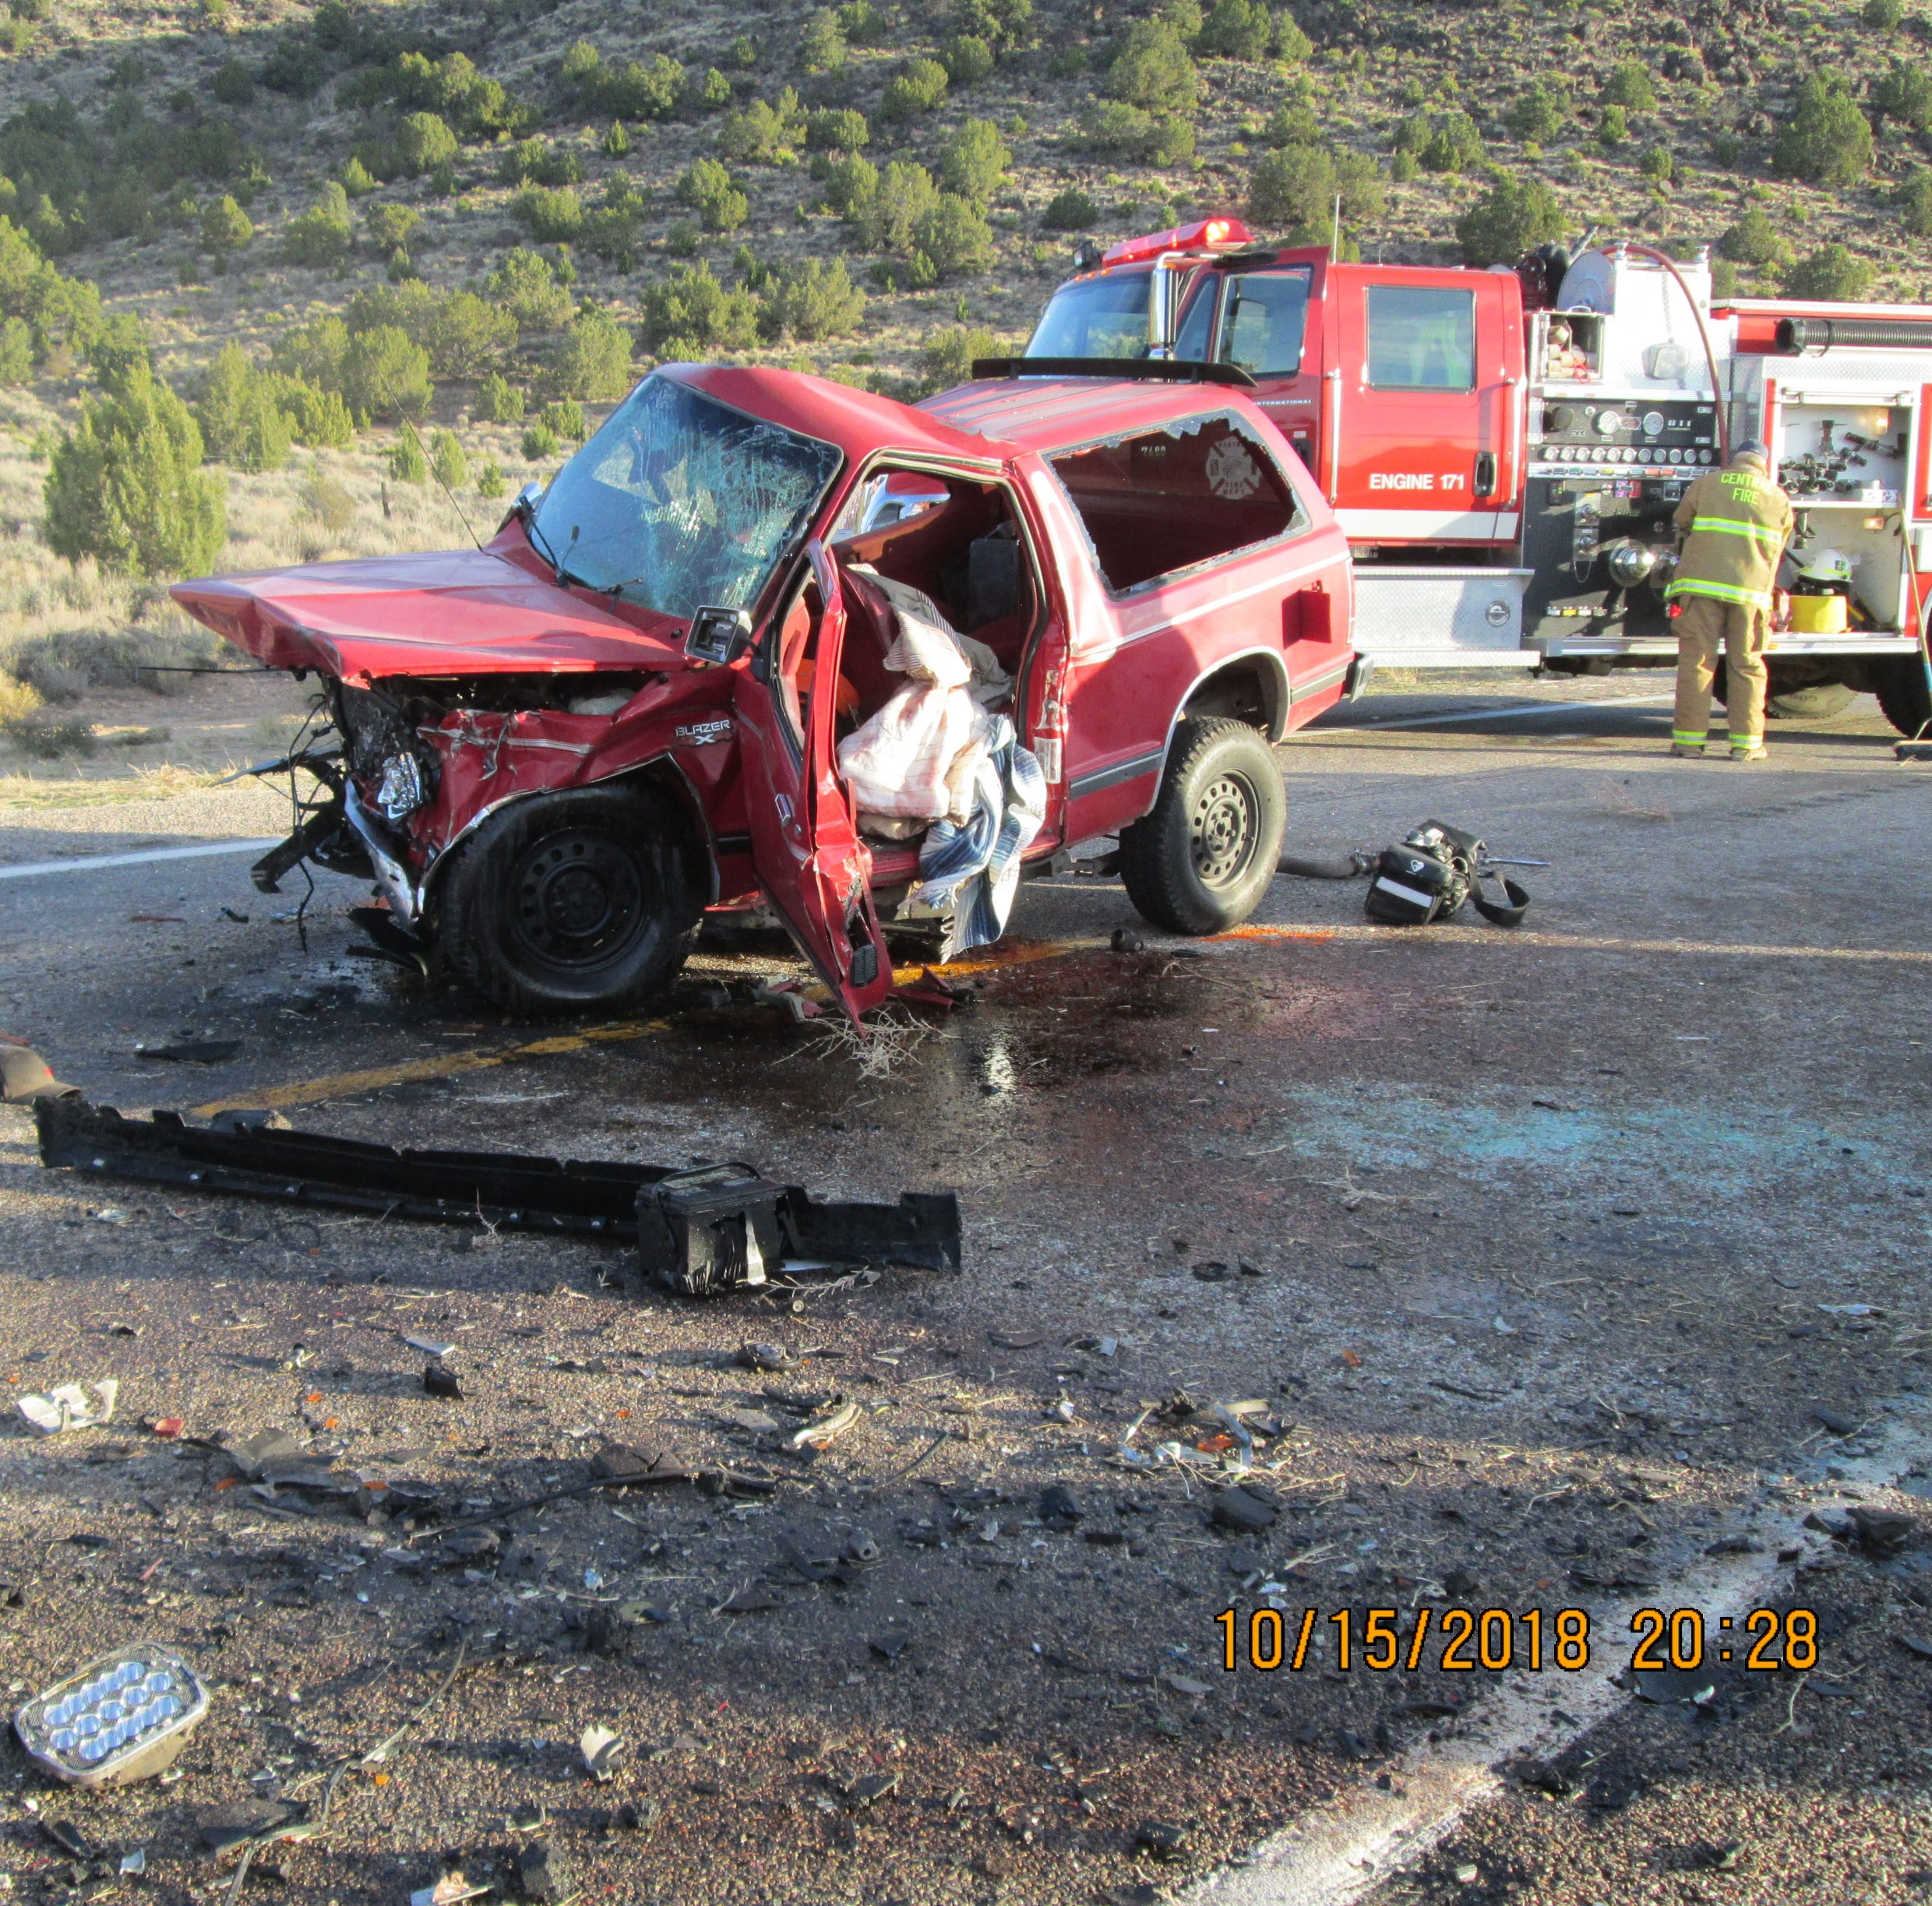 24-year-old killed in head-on crash on Southern Utah highway